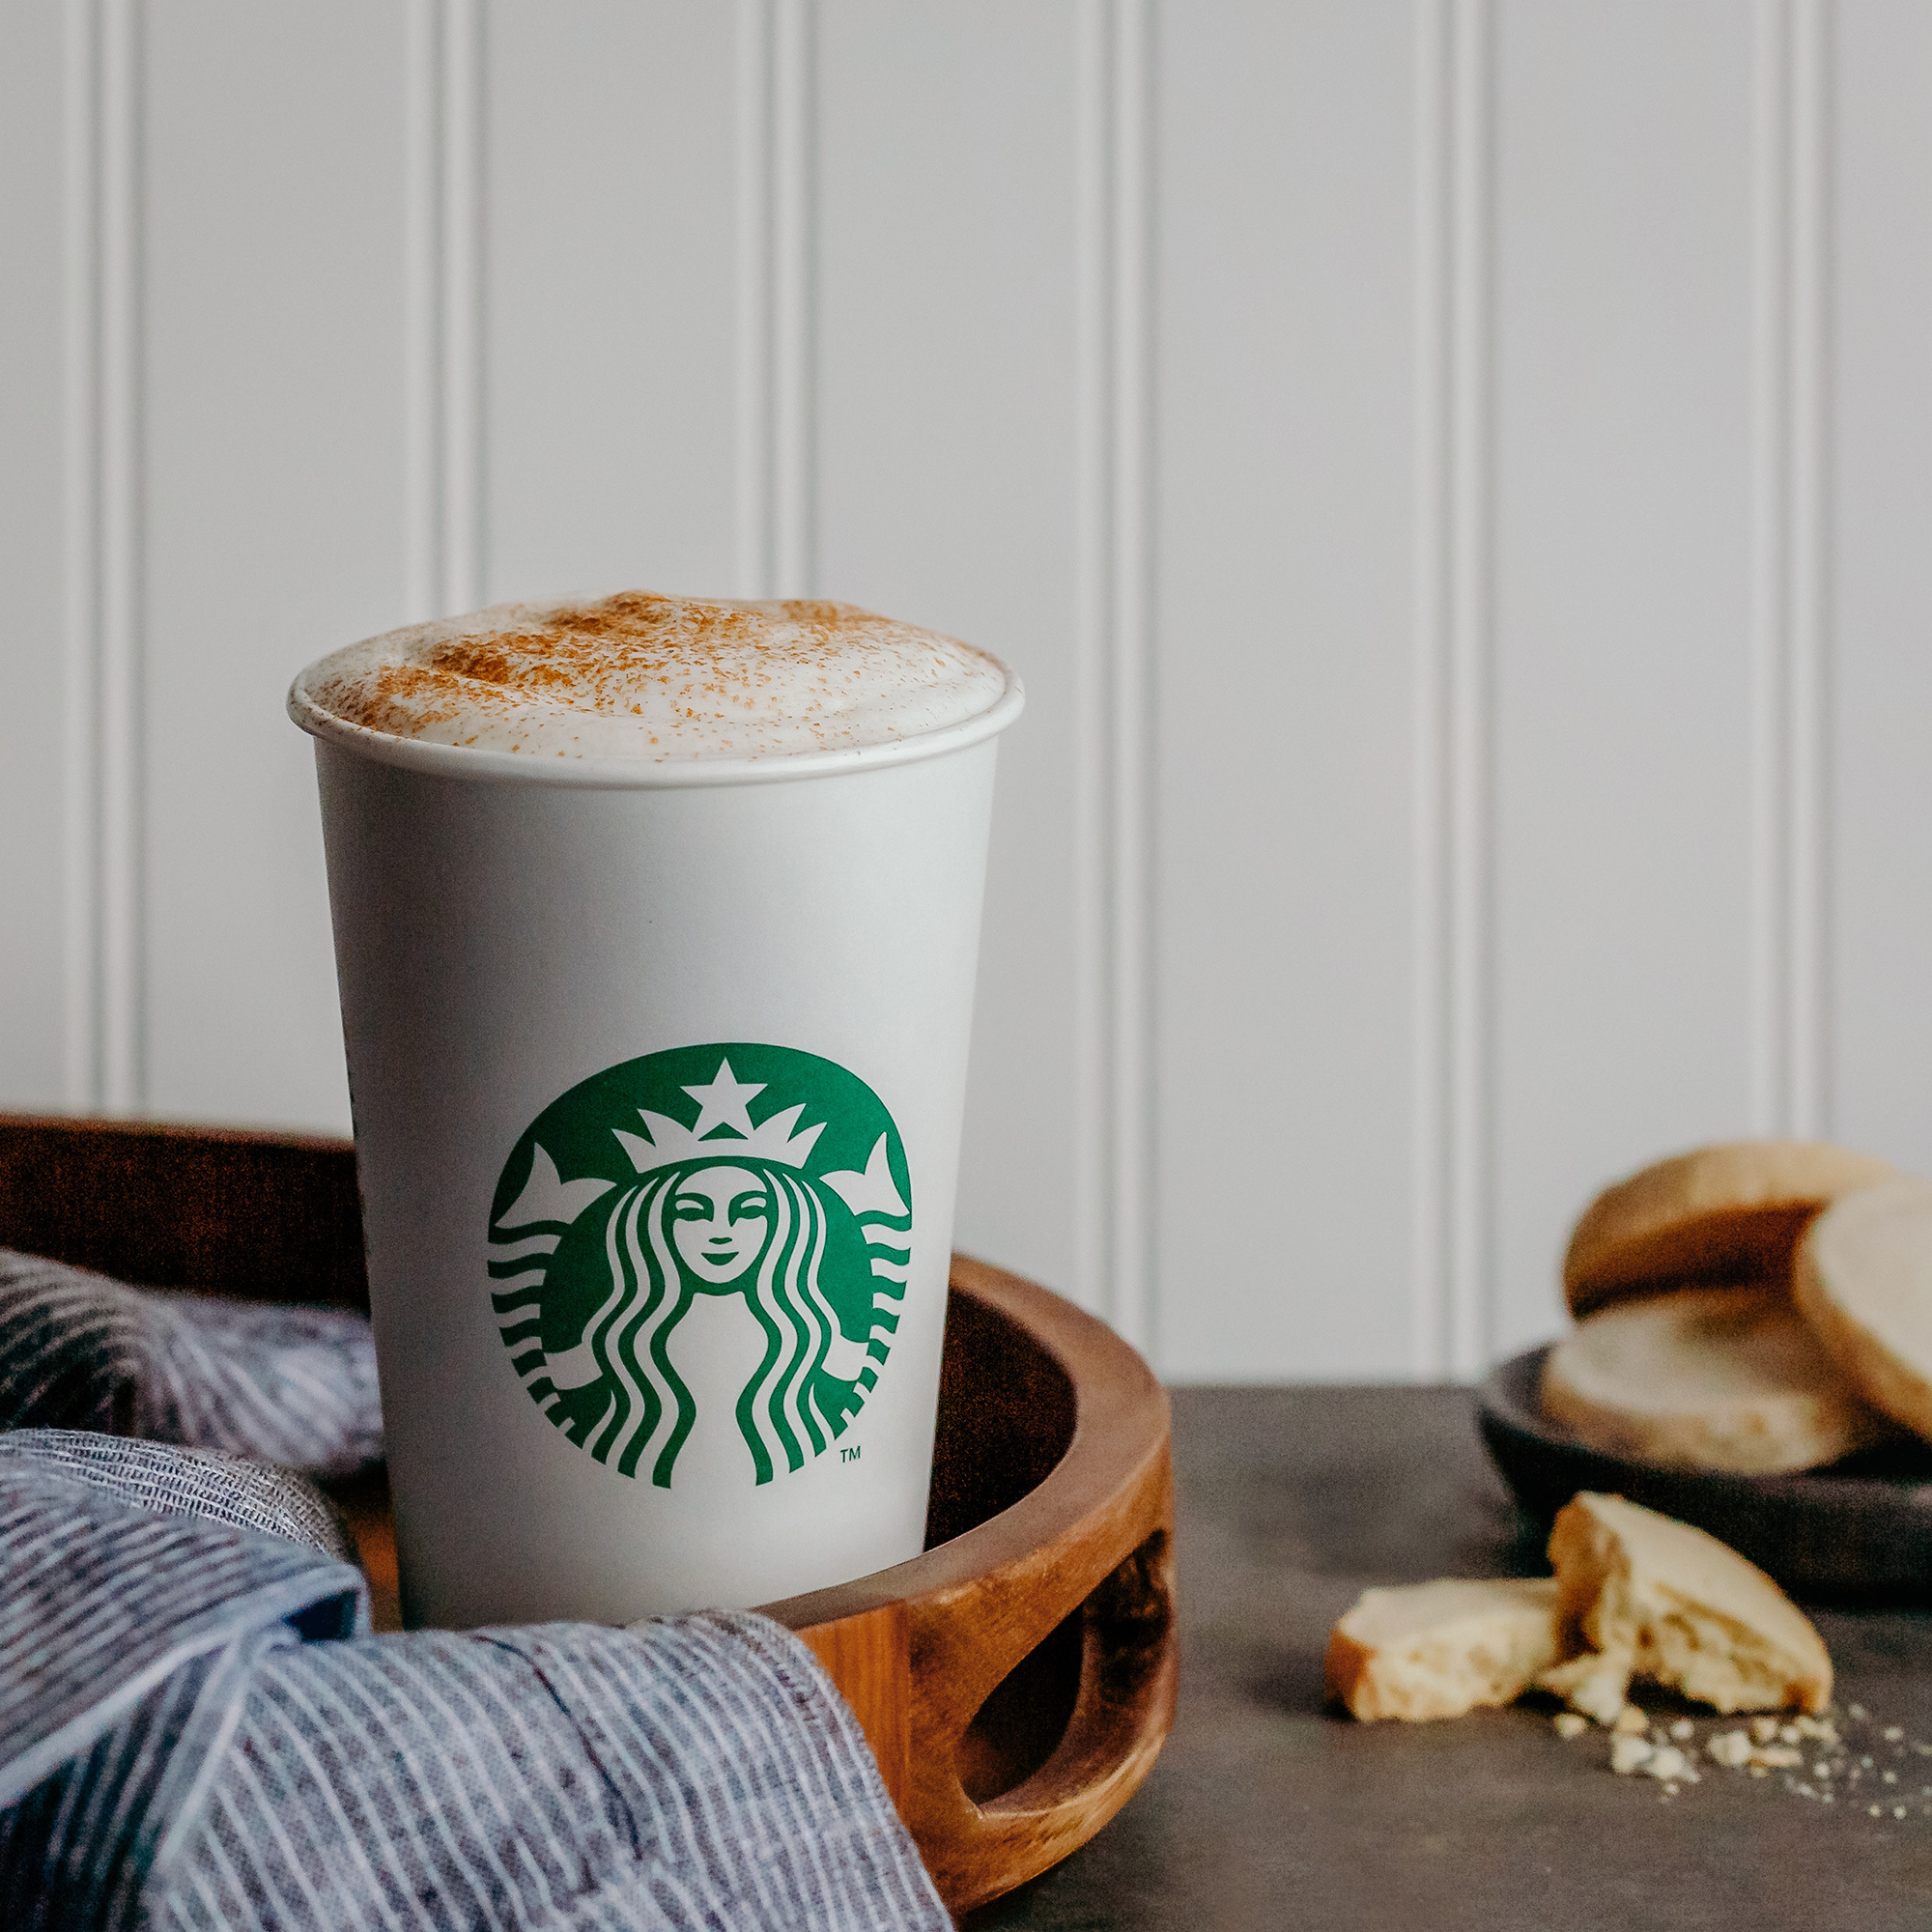 Has Tastes New Like Latte A Just Aol Starbucks Cookie Butter That fvb7Yg6y